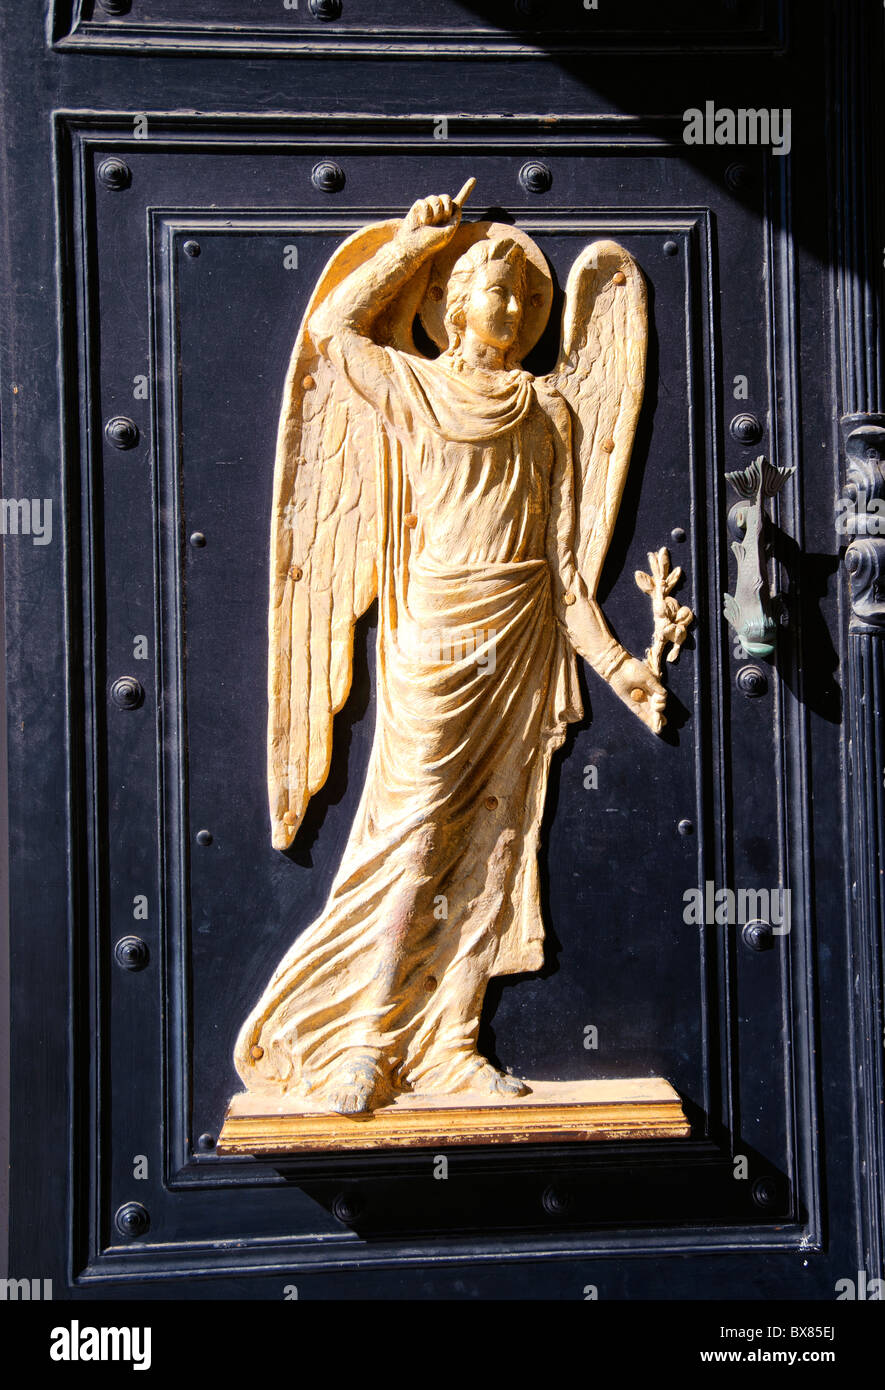 Carving of an angel on a entrance door leading to Panagia Evangelistria, the most revered religious shrine in Greece. - Stock Image